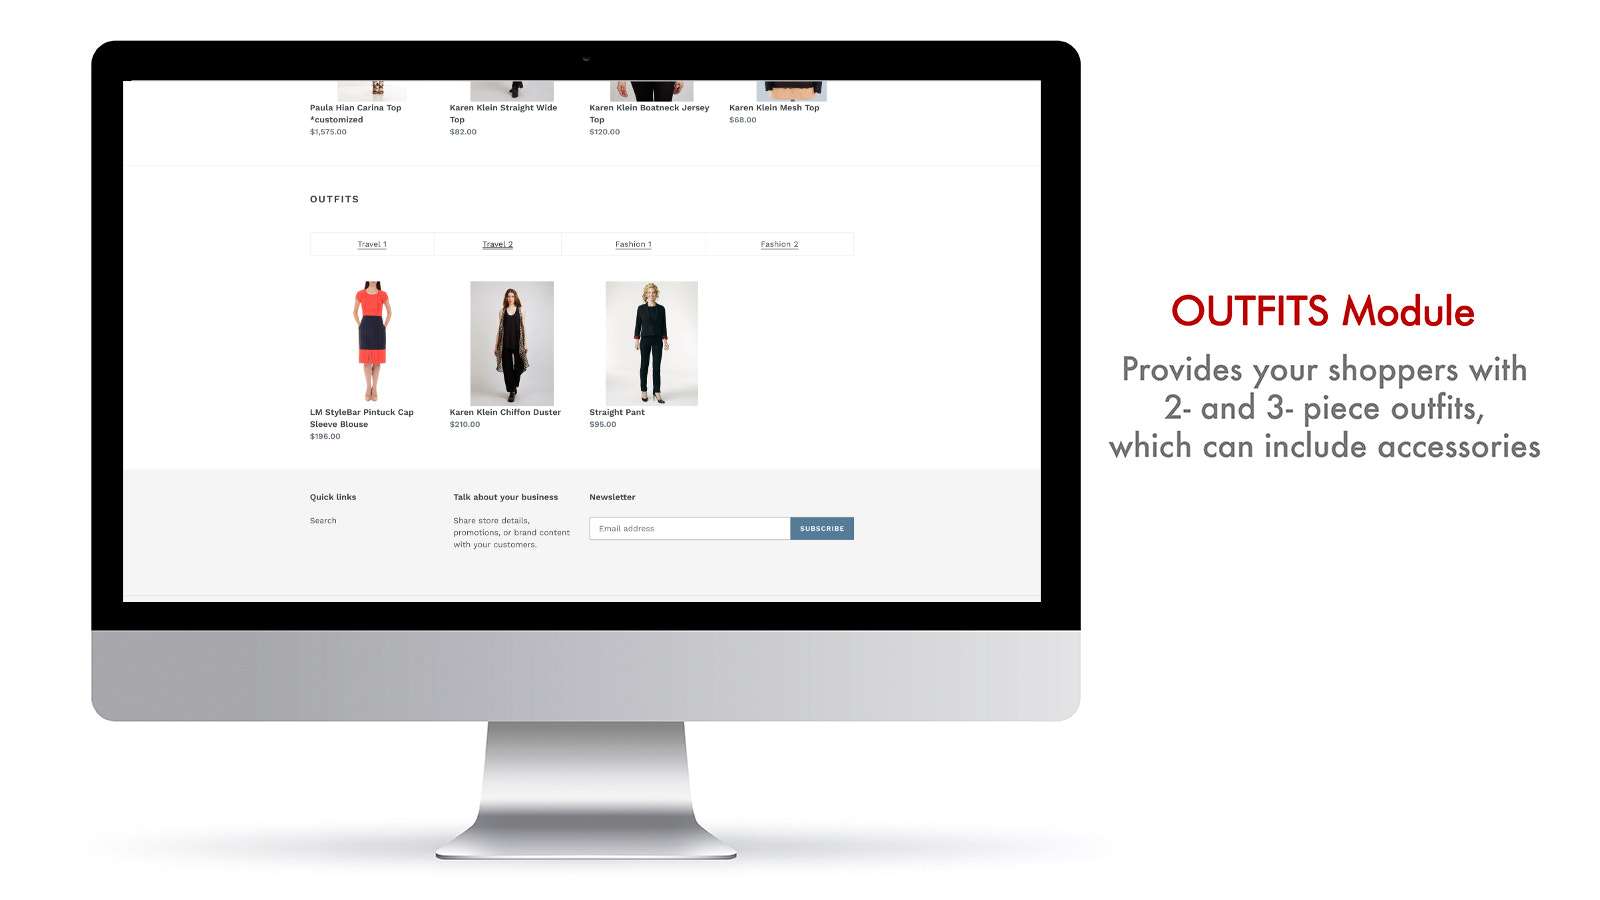 Savitude's OUTFITS module automatically assembles complete looks